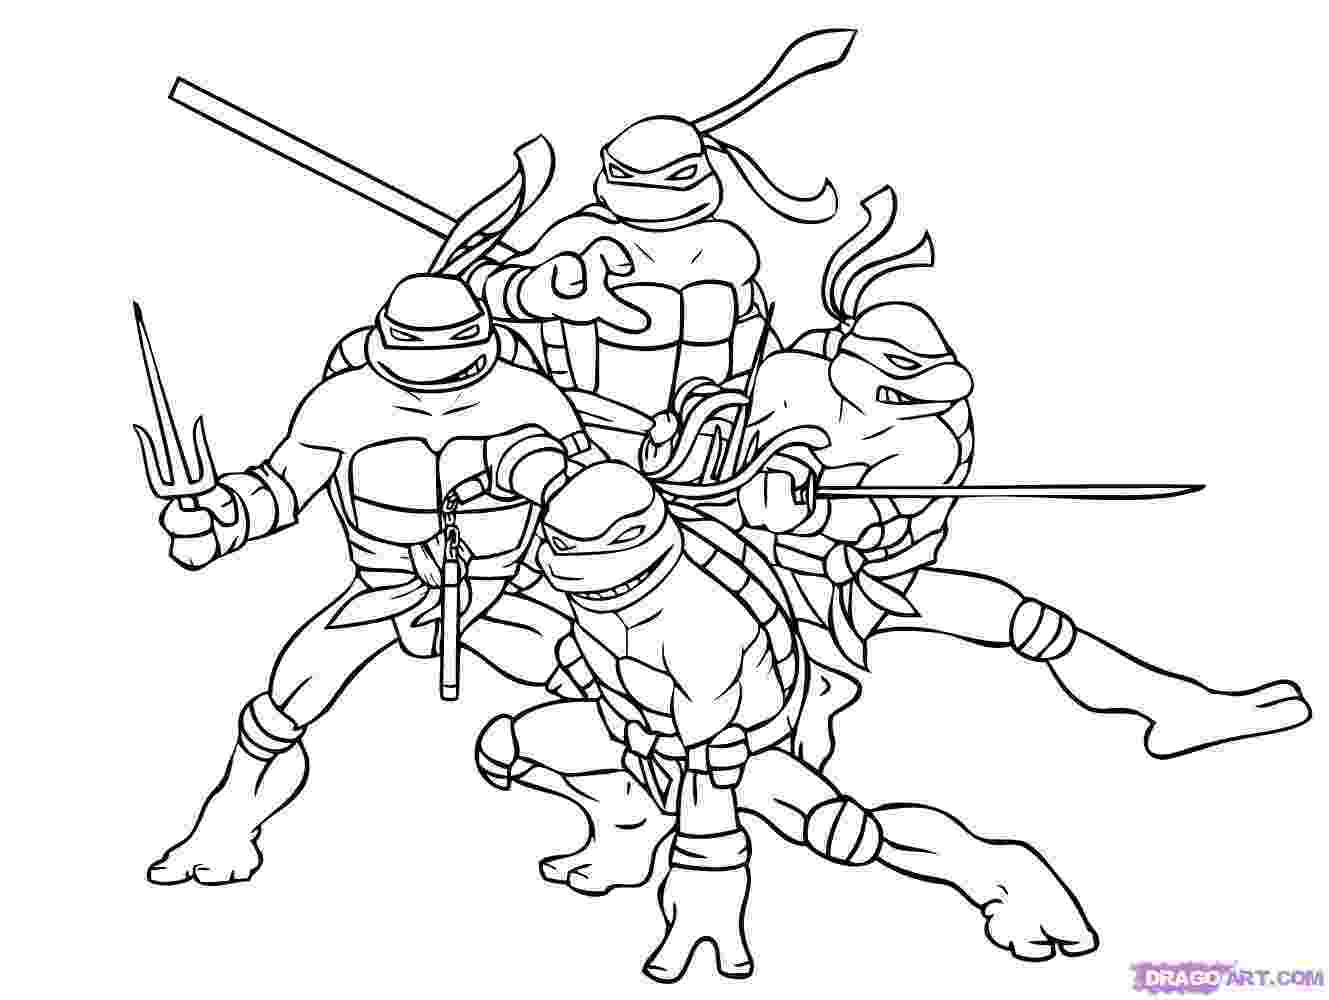 free tmnt coloring pages ninja turtle coloring pages free printable pictures tmnt pages coloring free